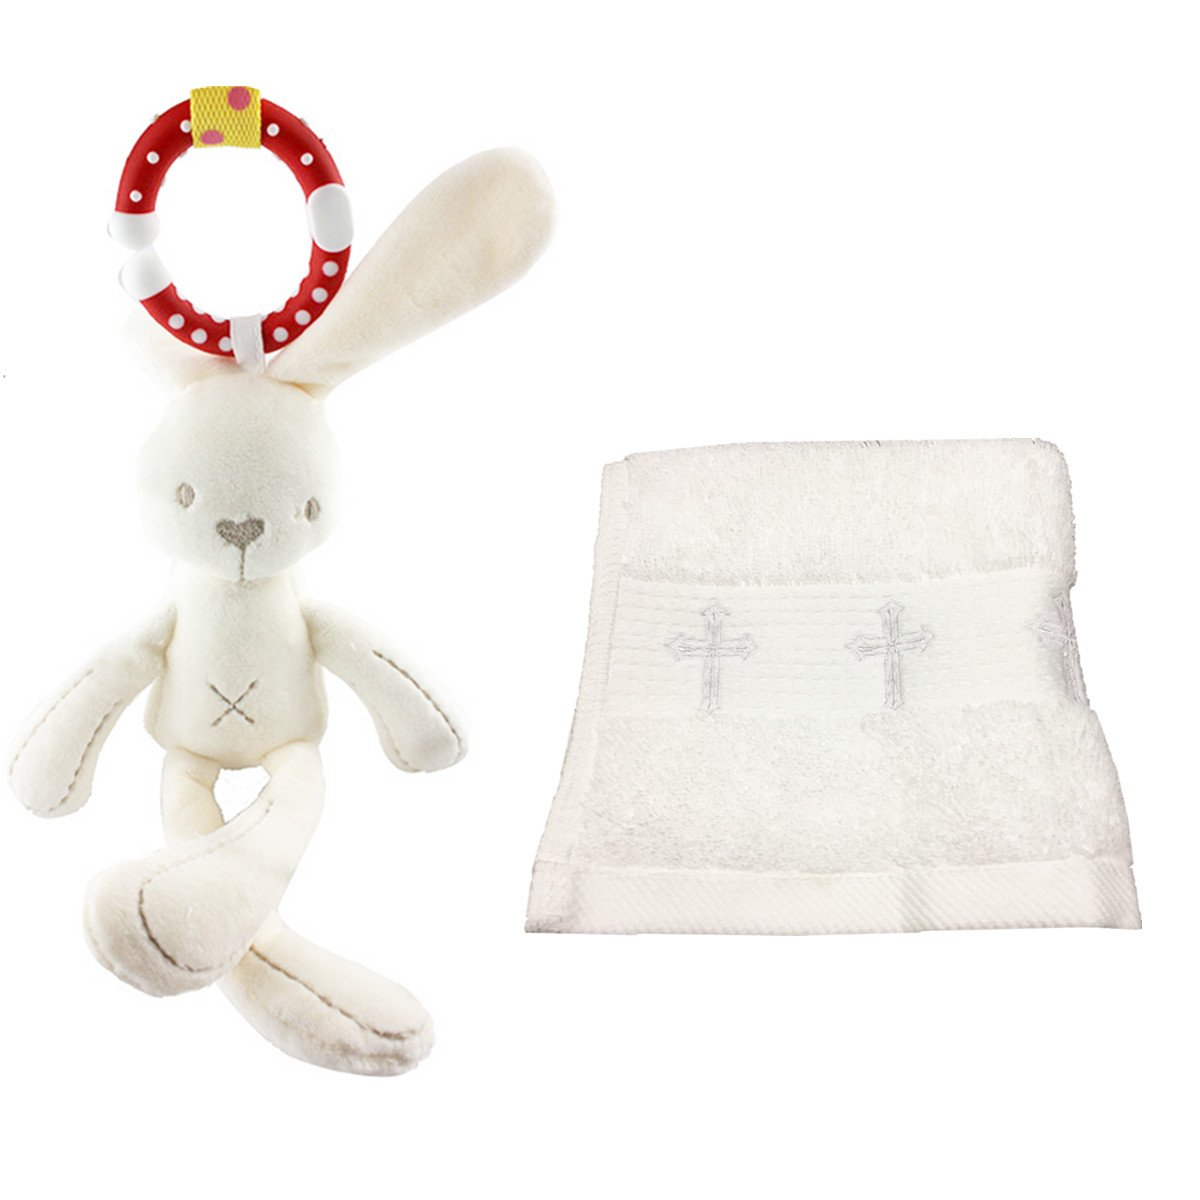 BBVESTIDO Baptism Towel with Cross Christening Gifts from Grandma Towel and Bed Bell)